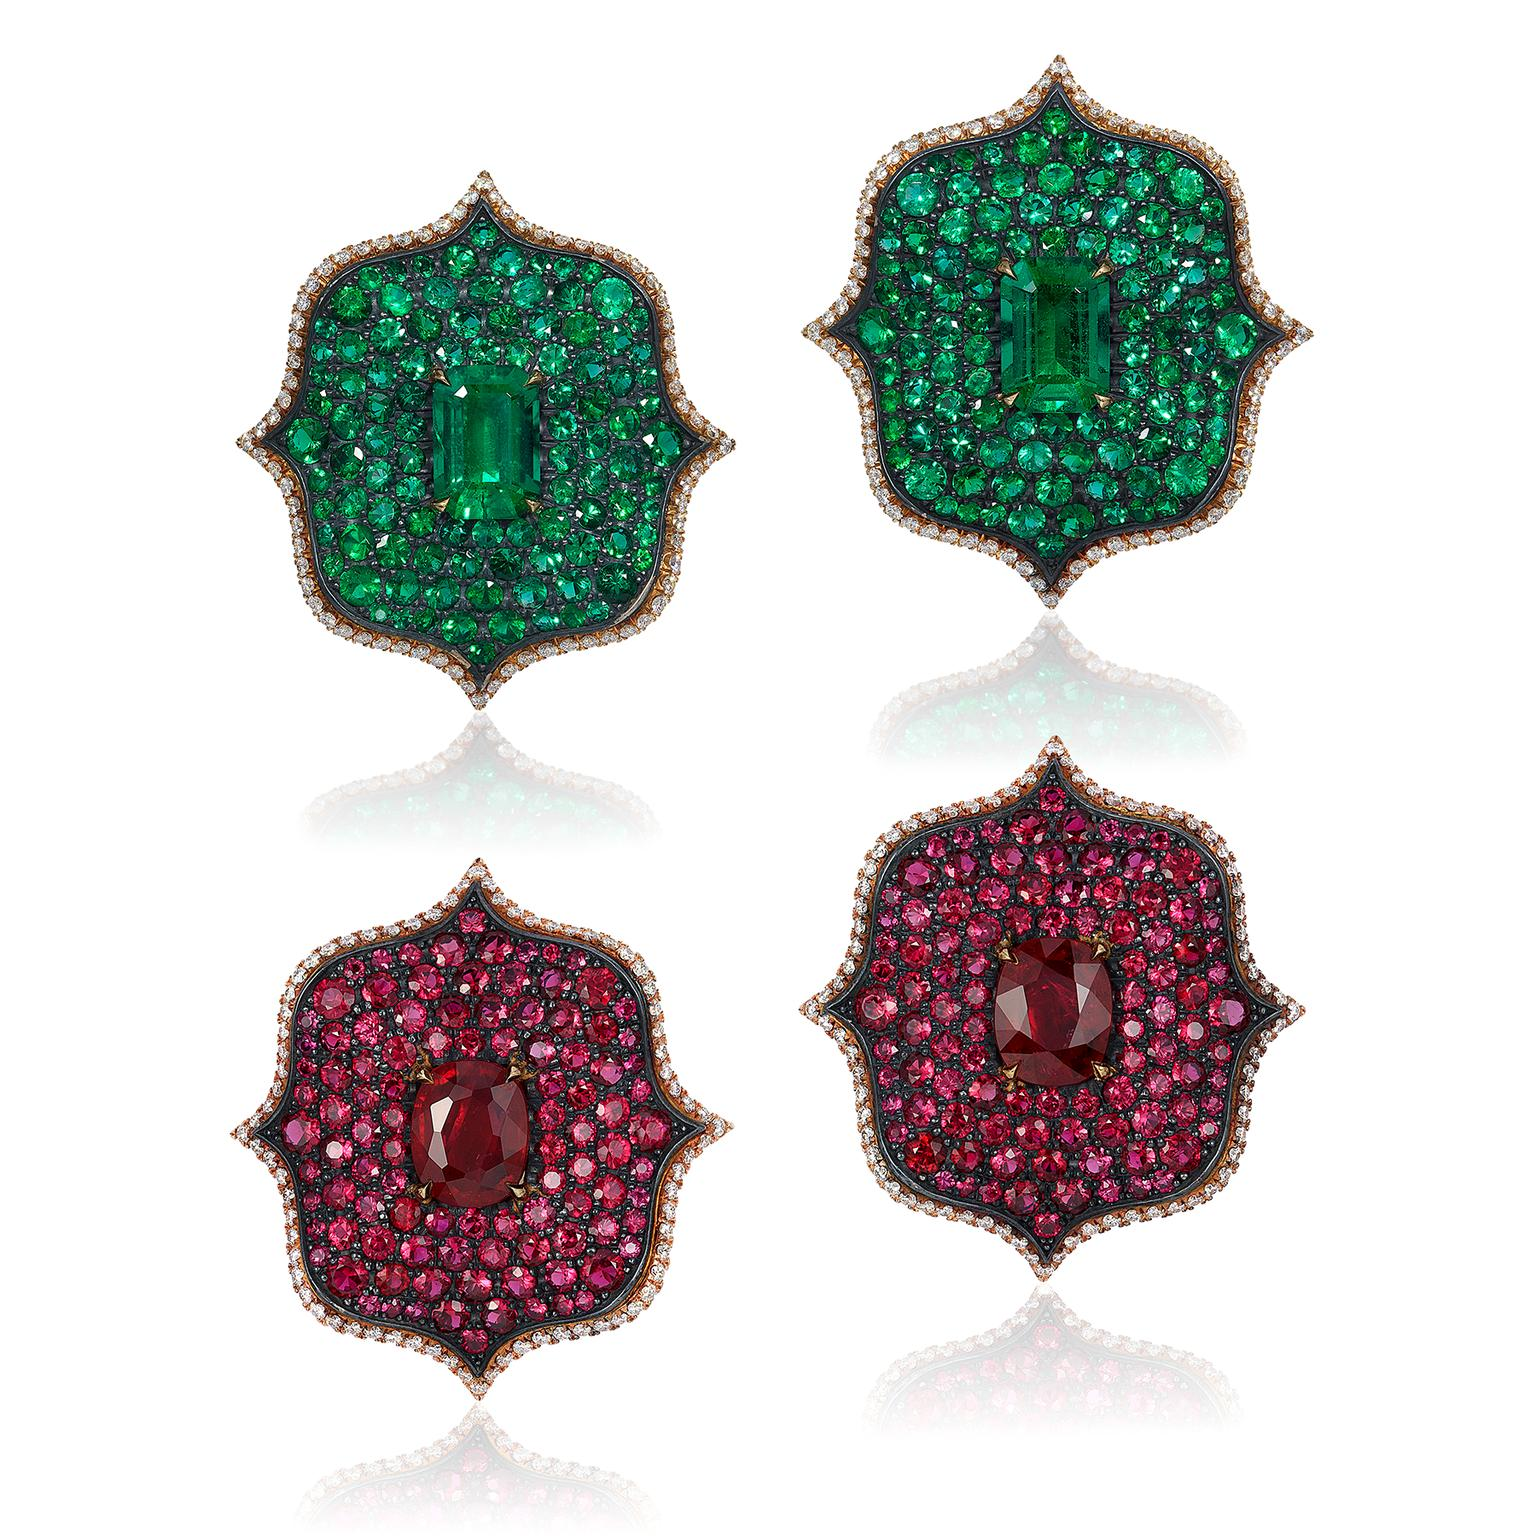 Bayco Monochrome Lotus earrings with emeralds and rubies